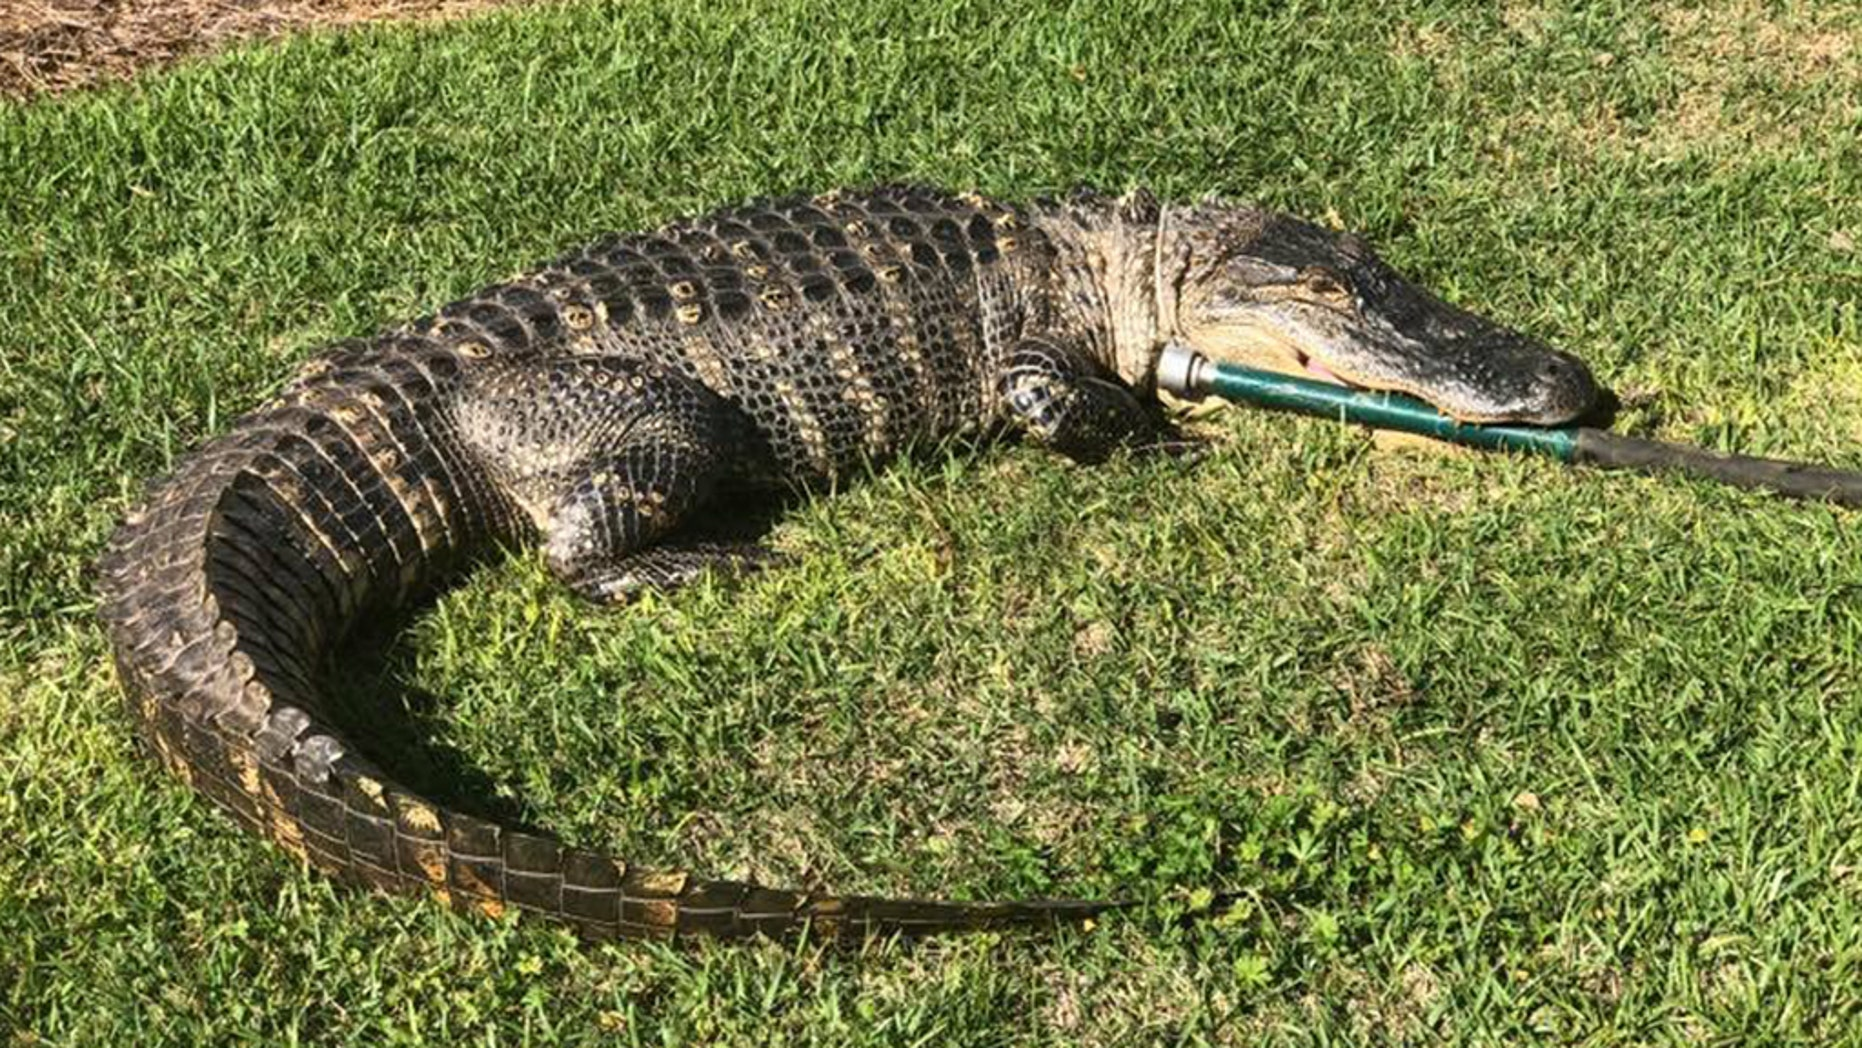 An 8-foot-long alligator was discovered strolling in a Florida neighborhood over the weekend, police said.